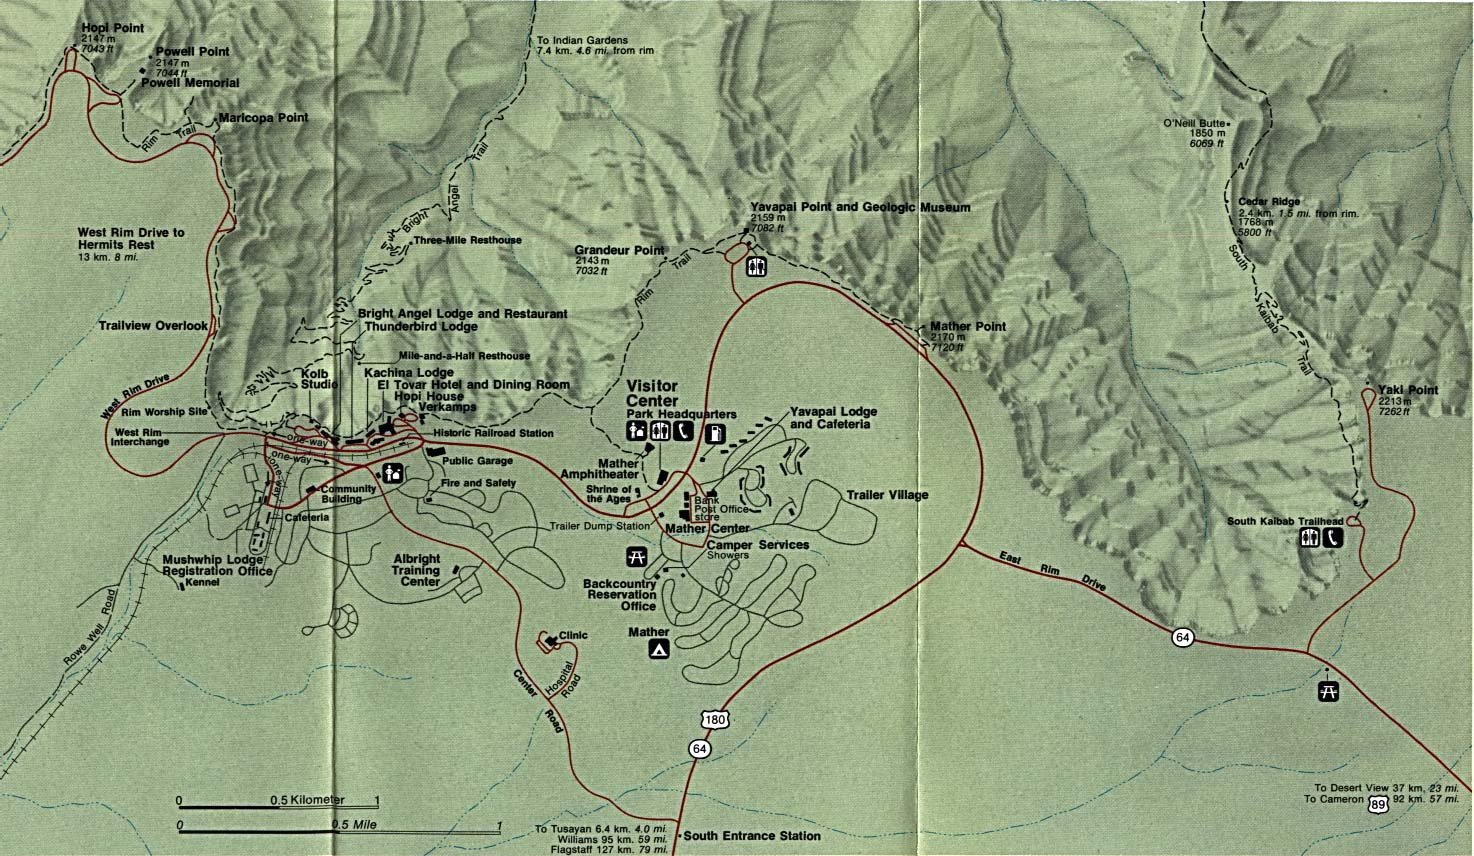 Arizona Maps PerryCastañeda Map Collection UT Library Online - Southwest us topographic map